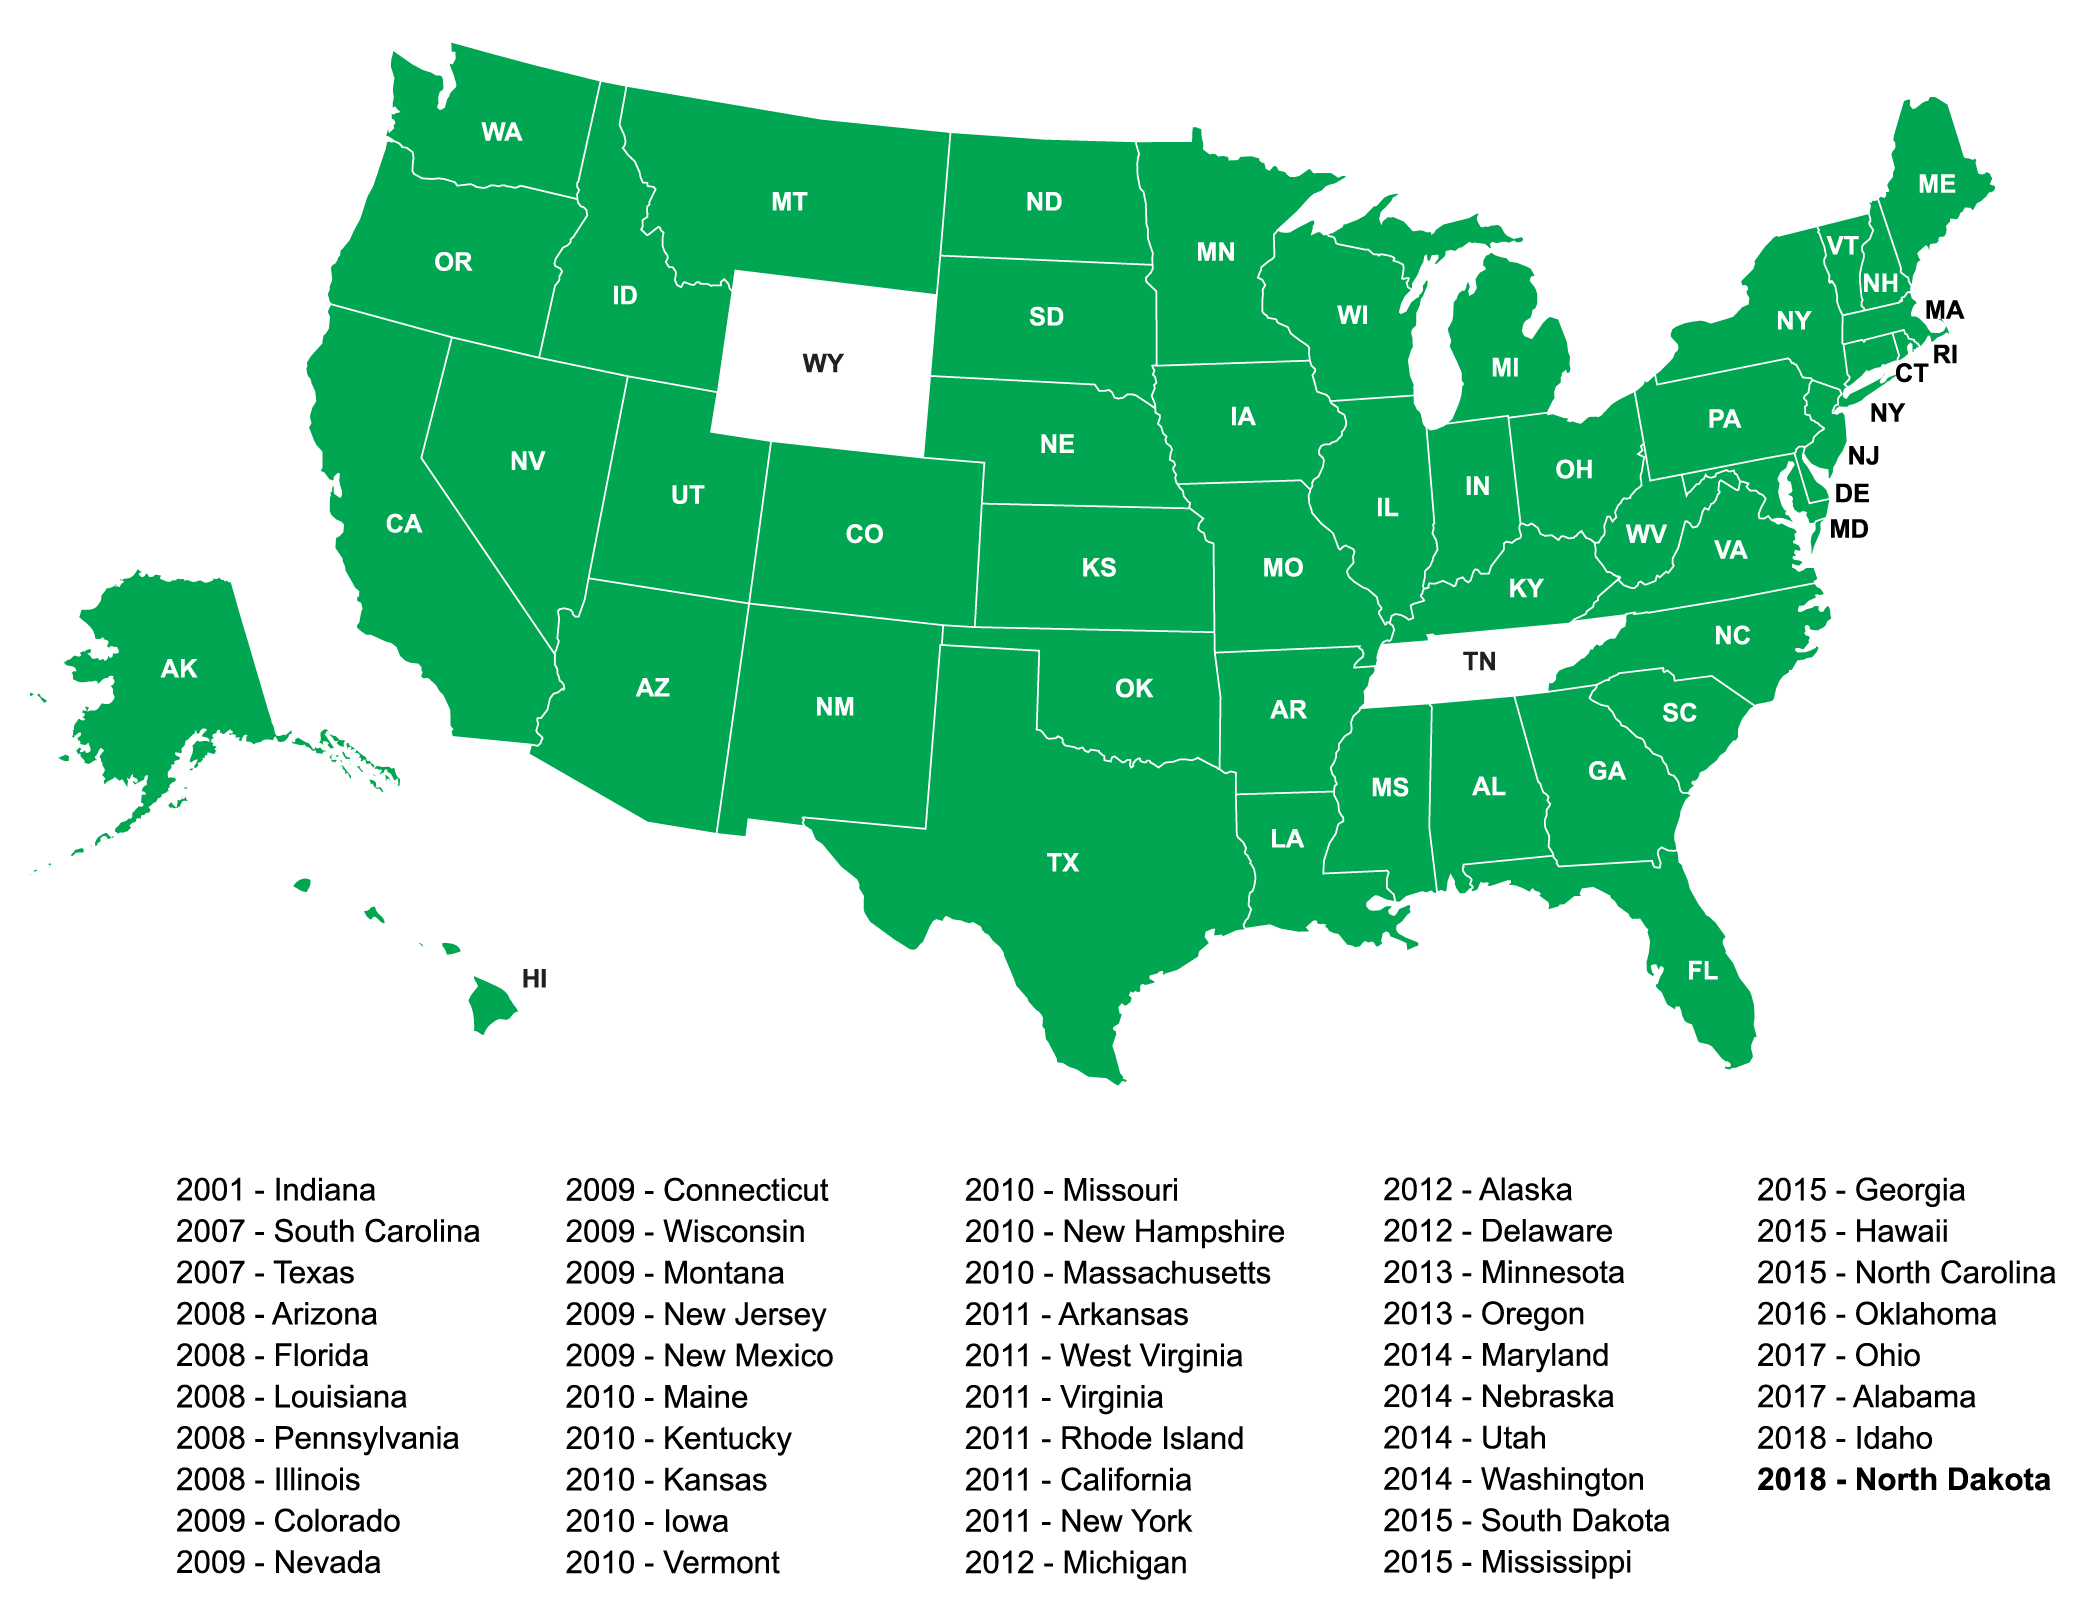 Map of the United States with every state except Wyoming and Tennessee colored green.